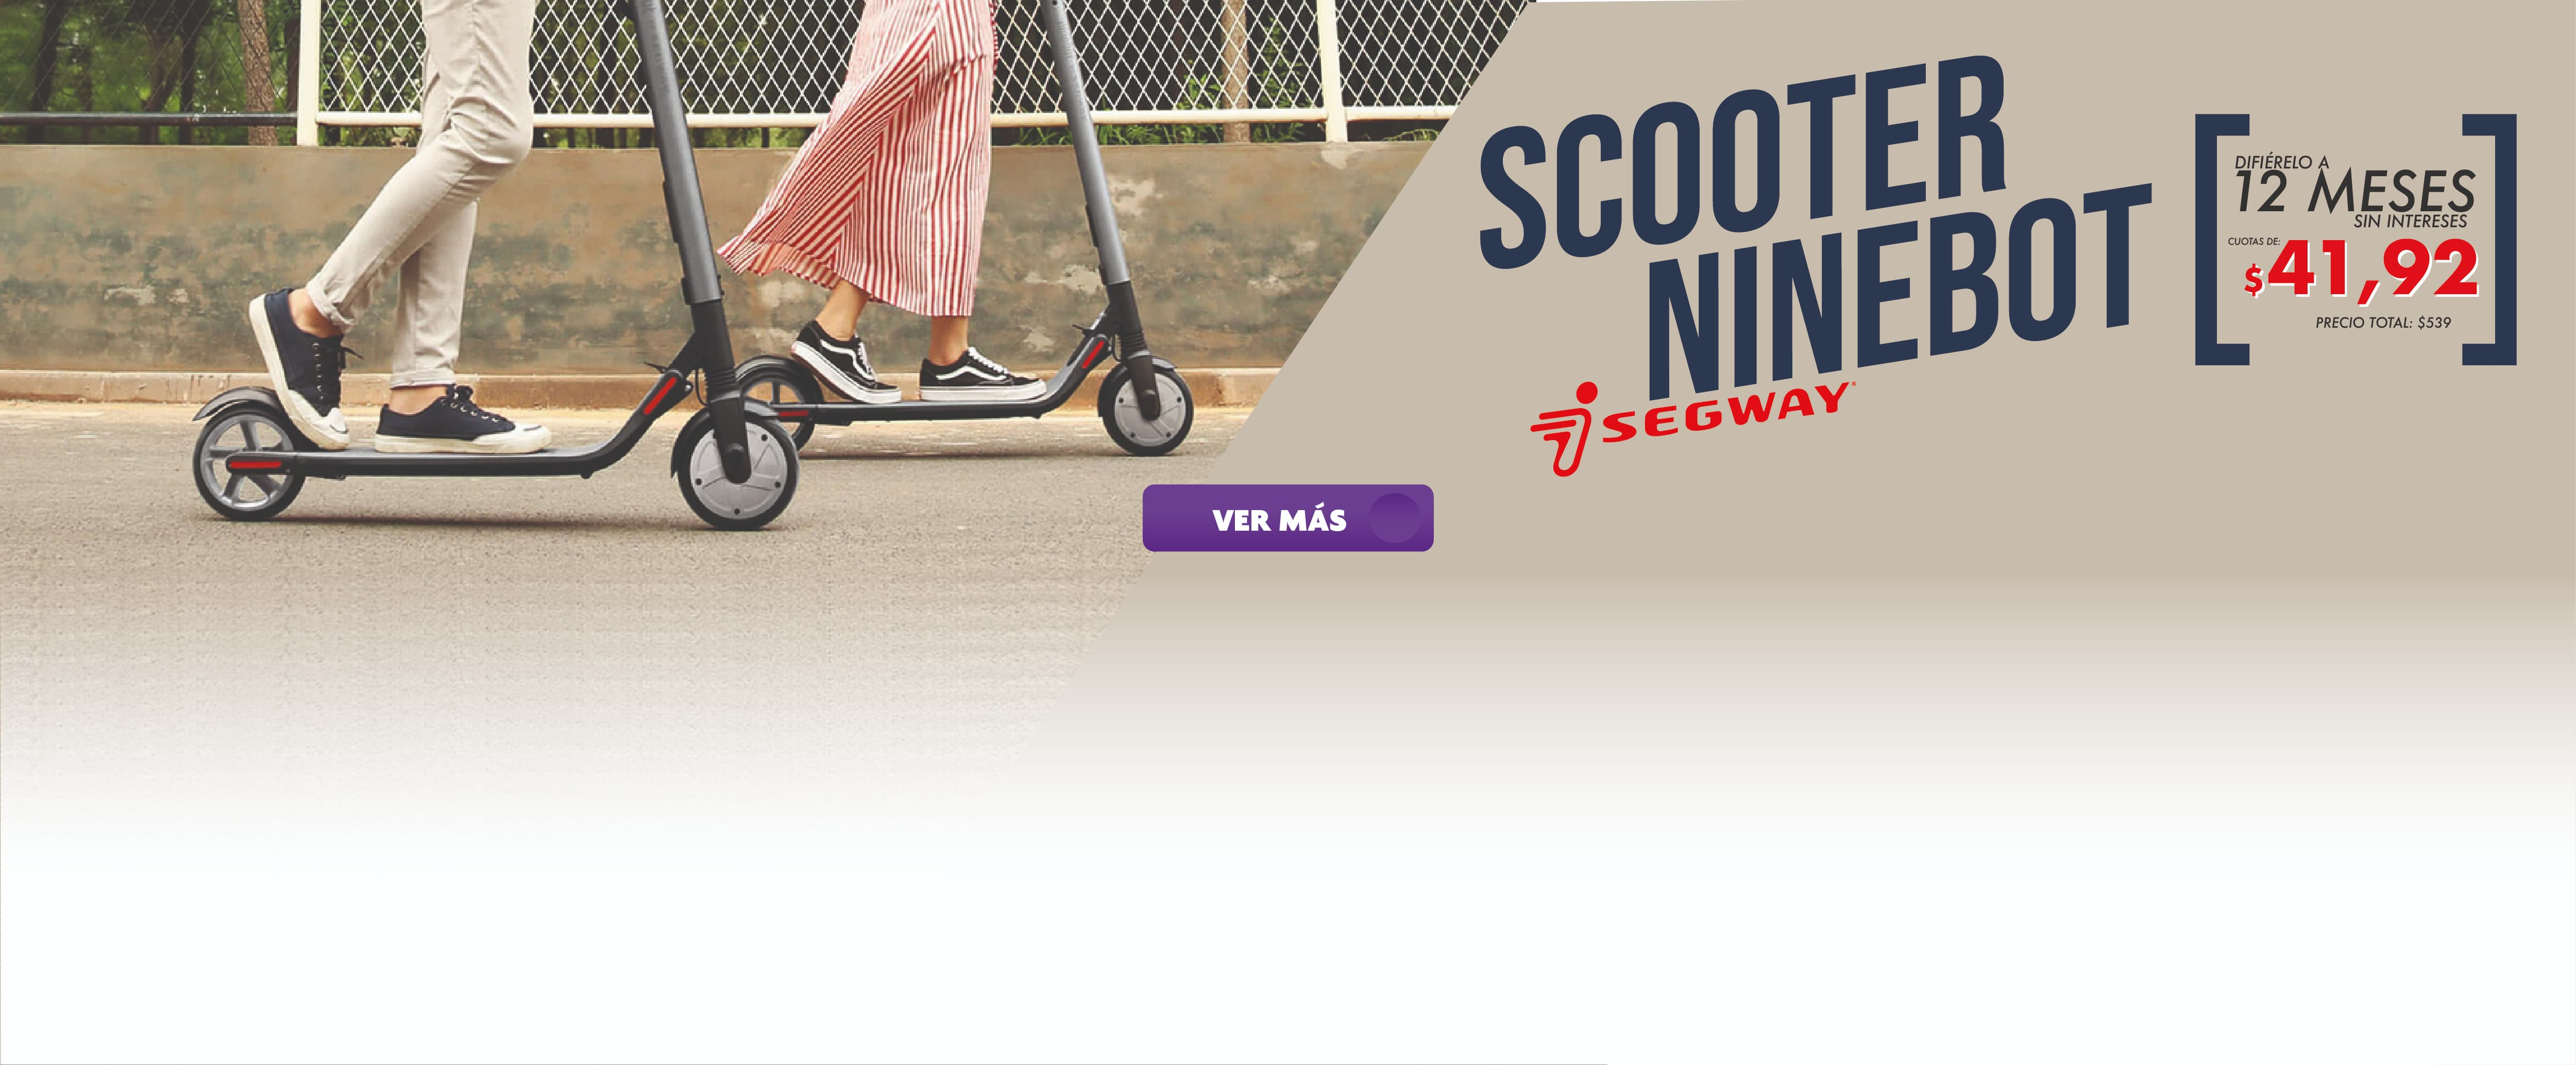 Scooter Ninebot